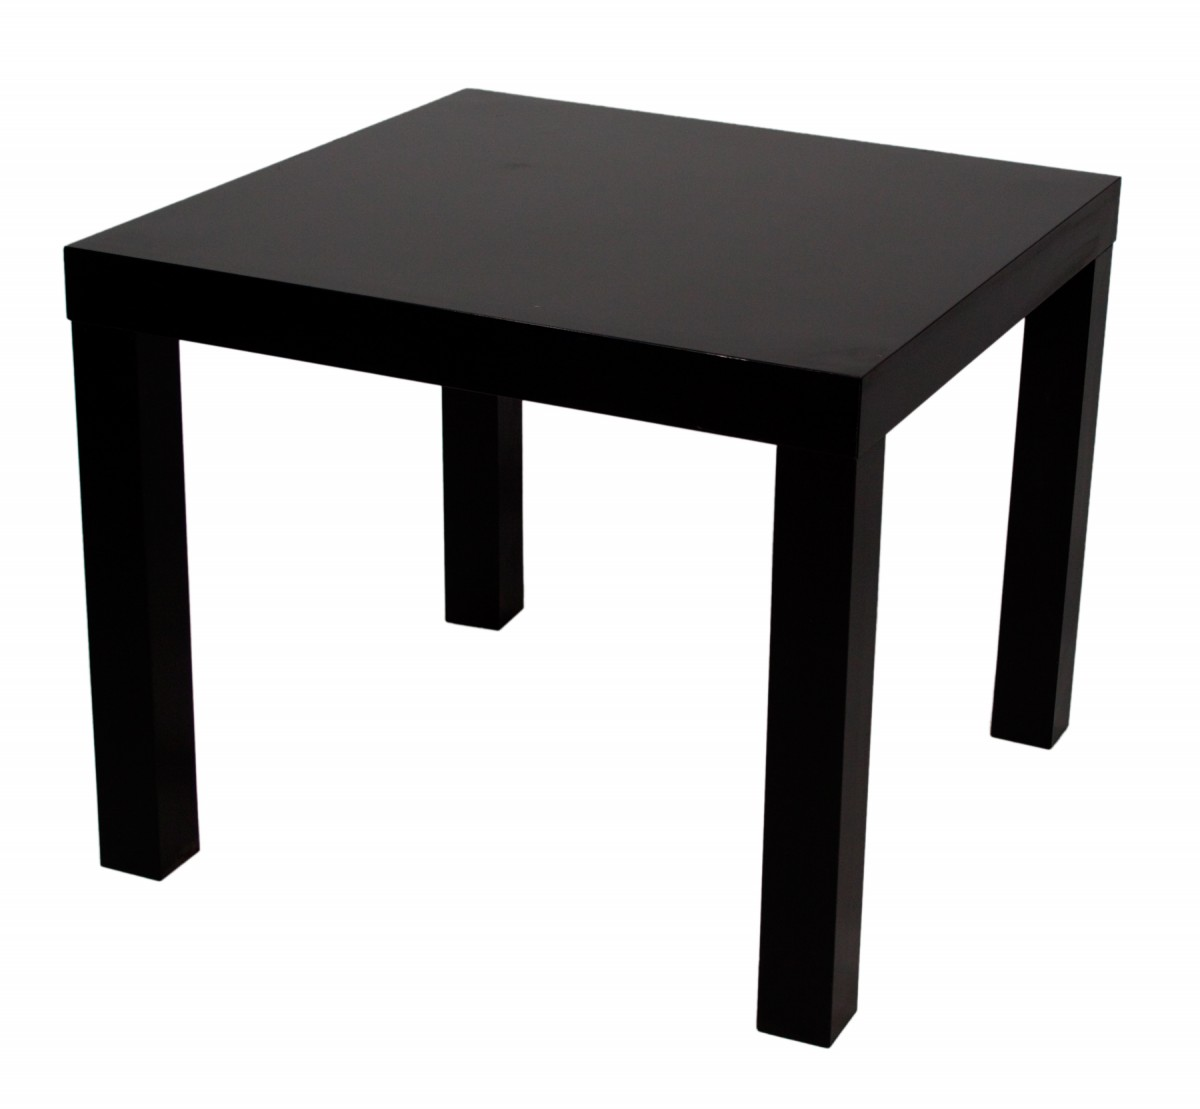 Table basse woody noire mobilier location for Table rallonge noire